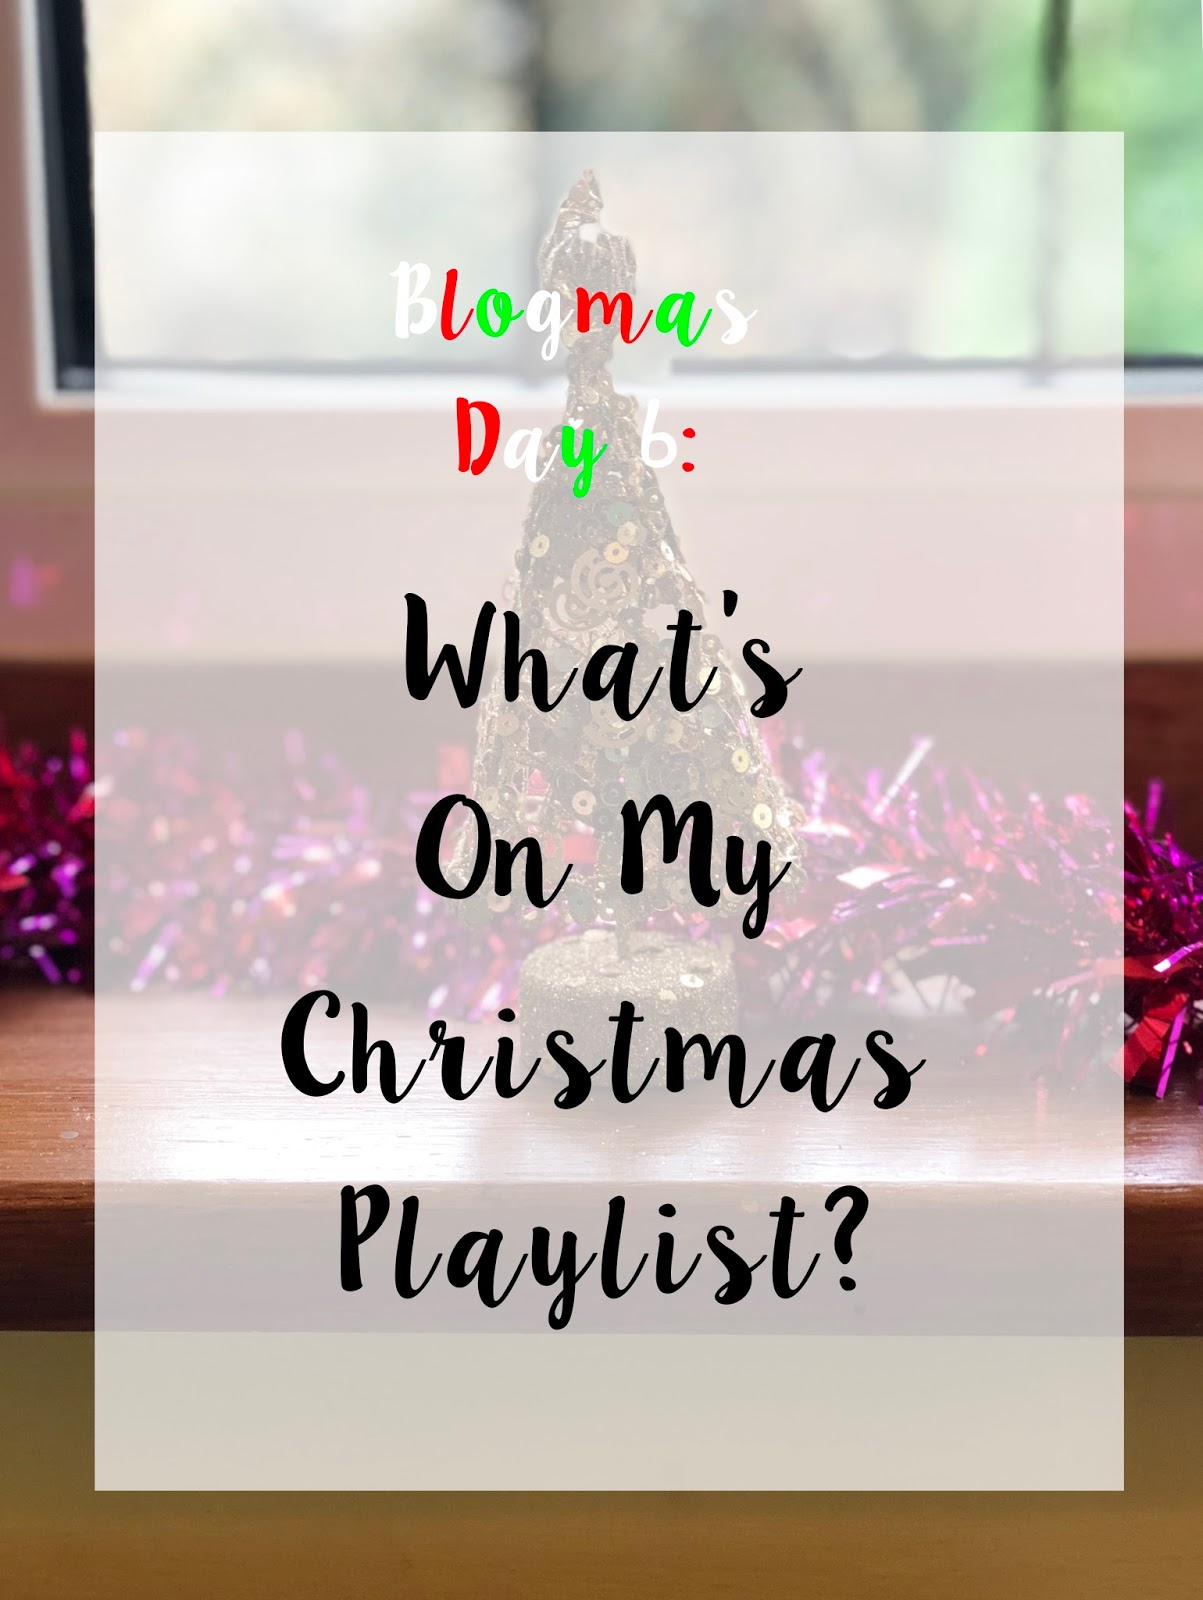 Blogmas Day 6: What's On My Christmas Playlist?